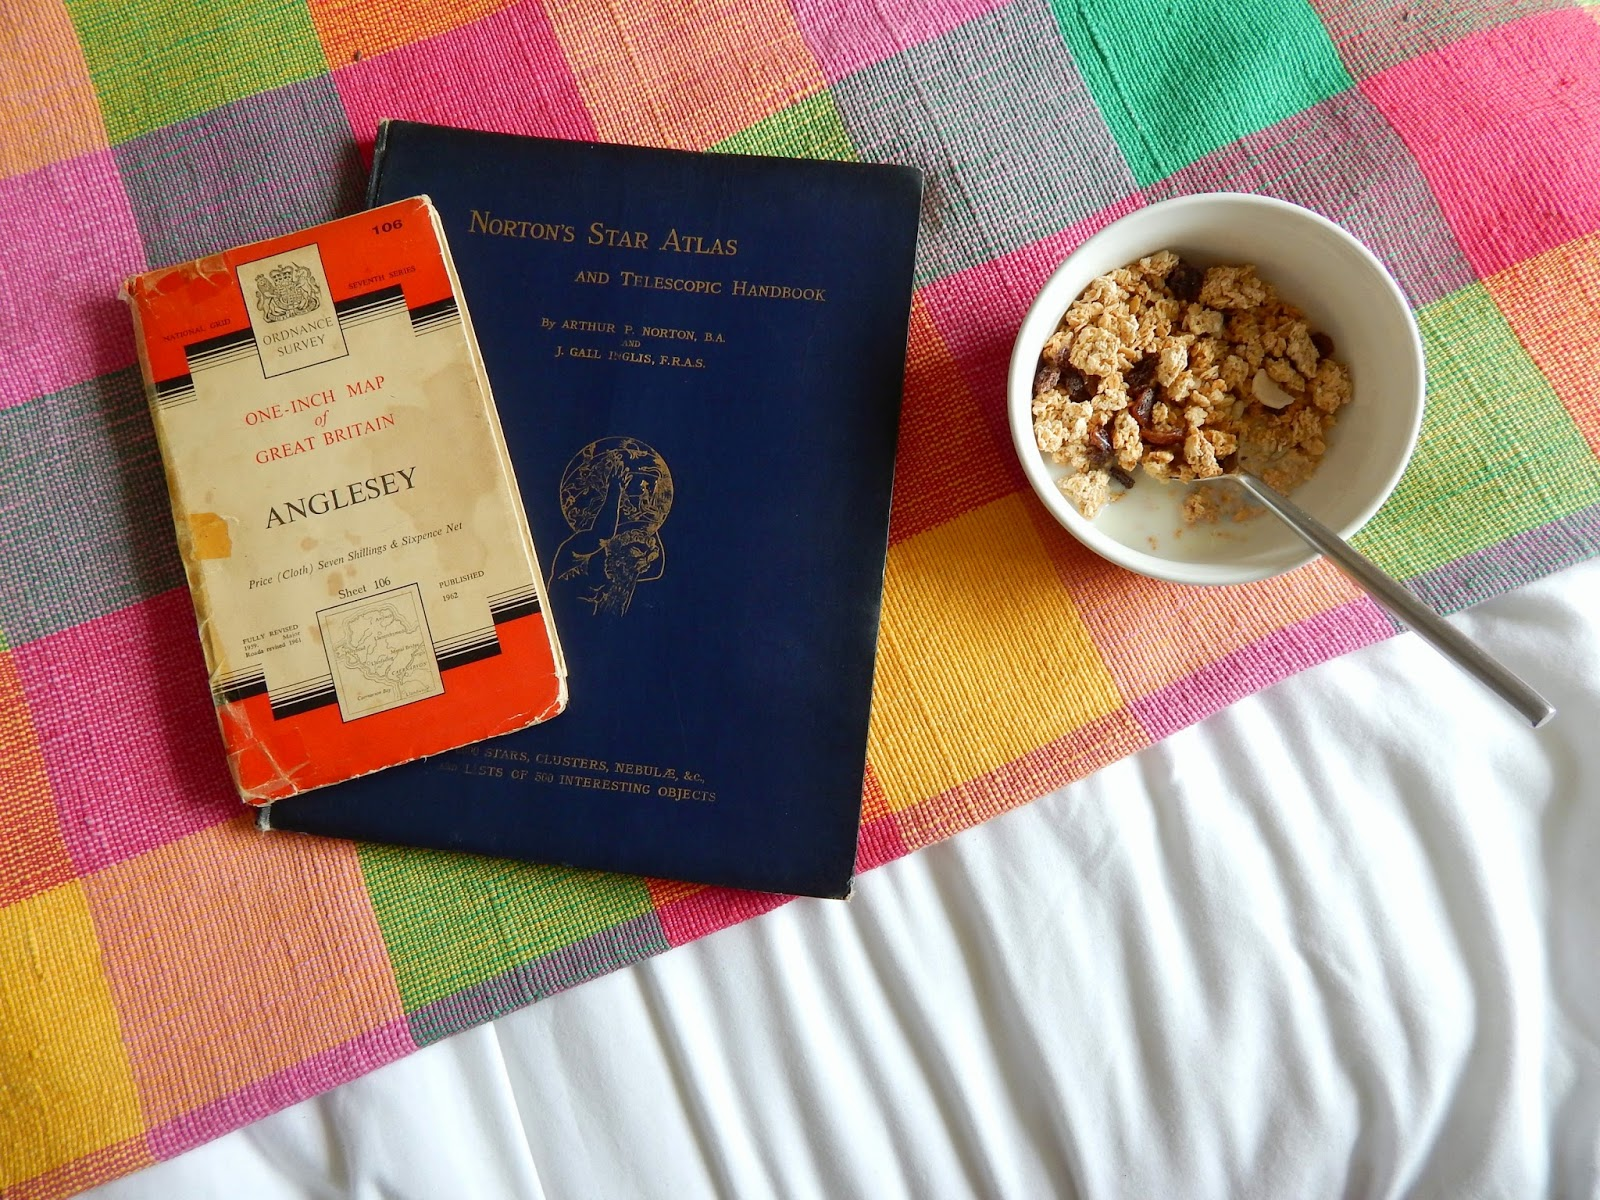 Blanket, Cereal, Astrology Book, Map